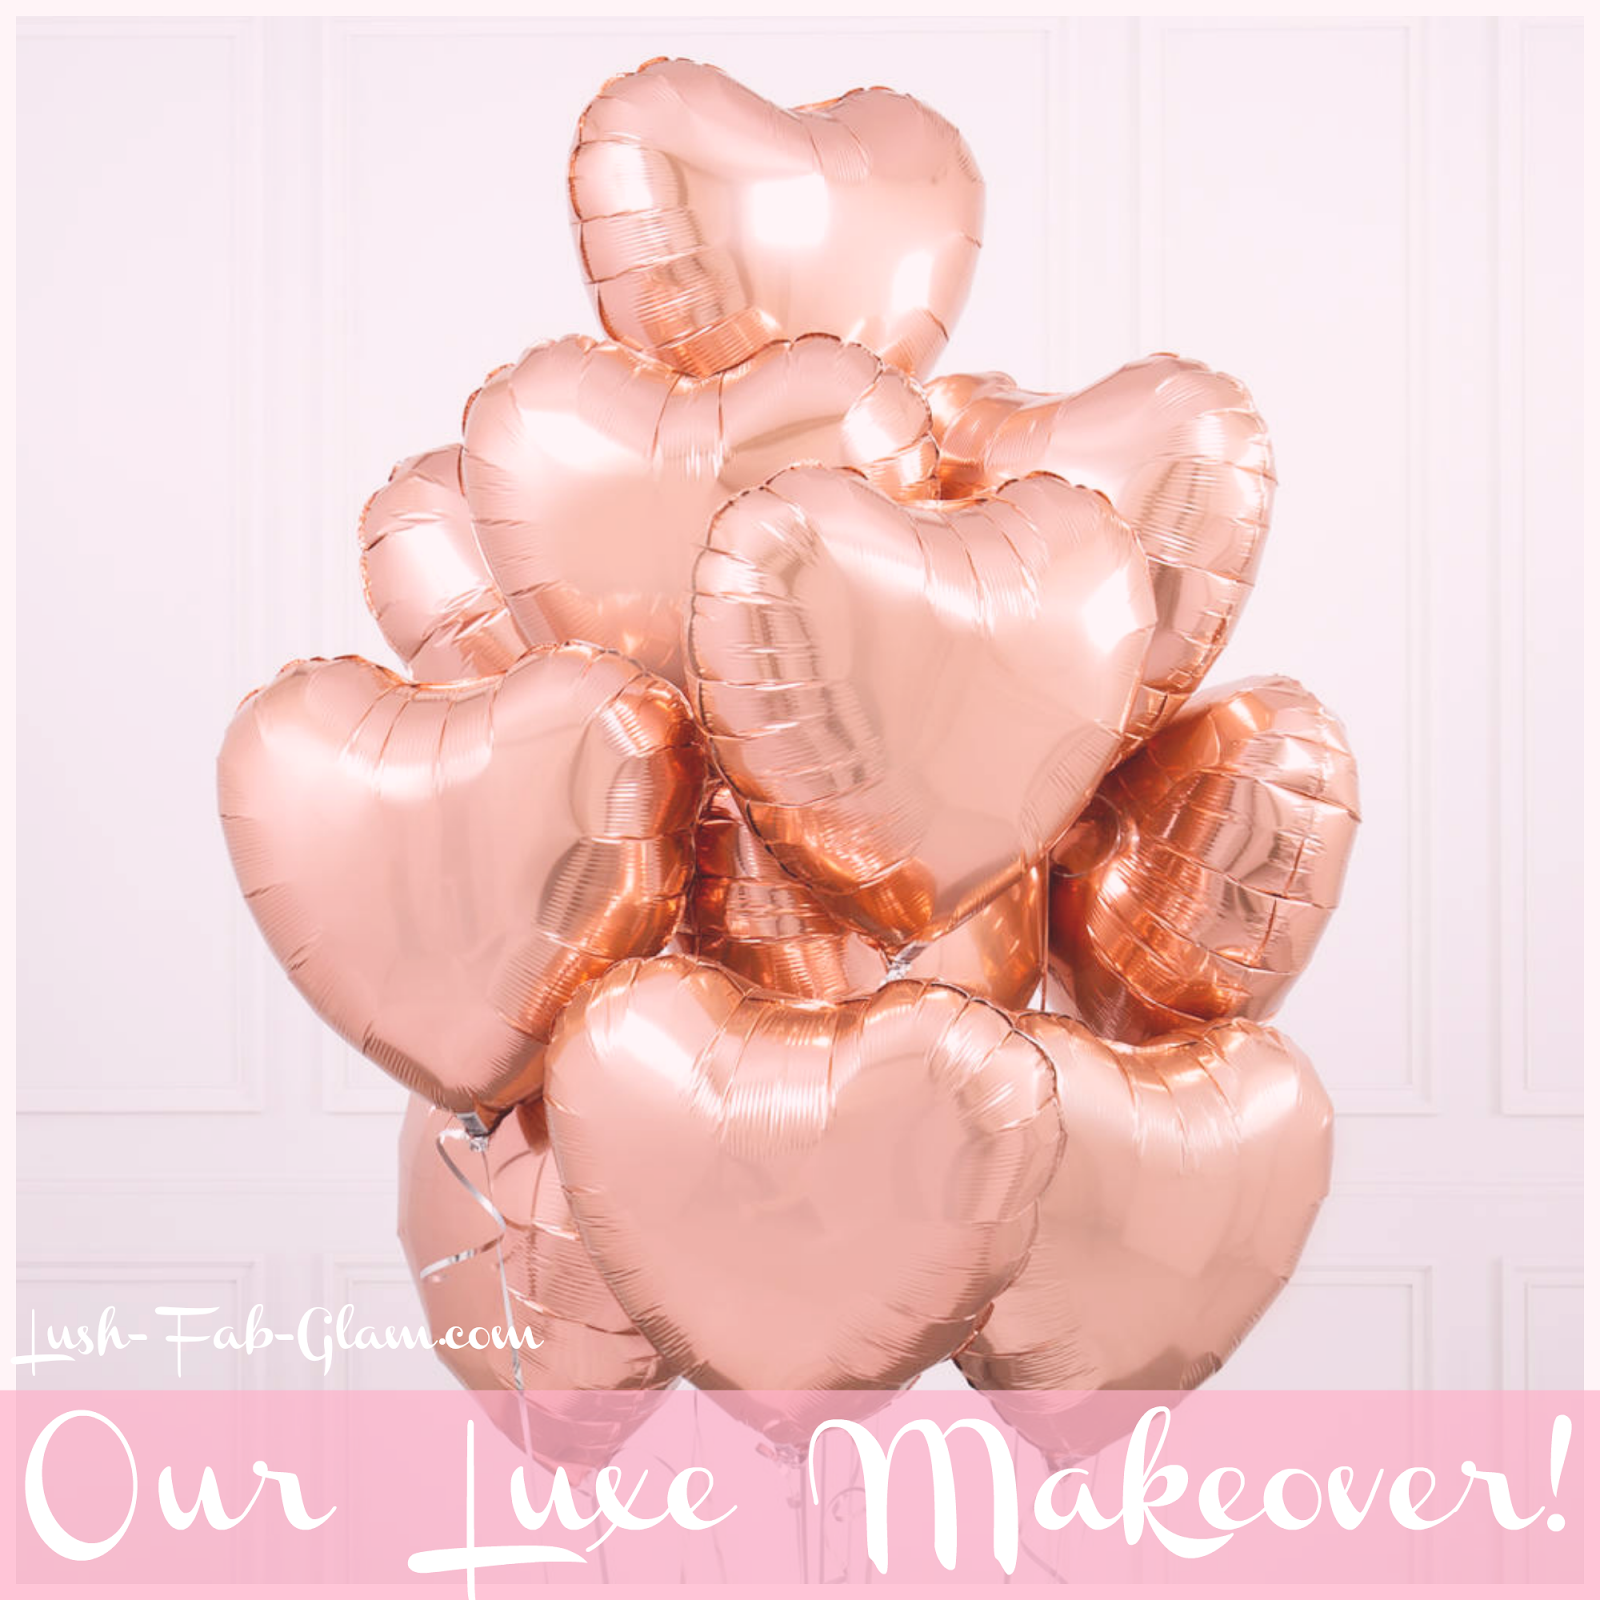 Introducing the new Lush-Fab-Glam.com! See our Luxe website makeover and what's to come.